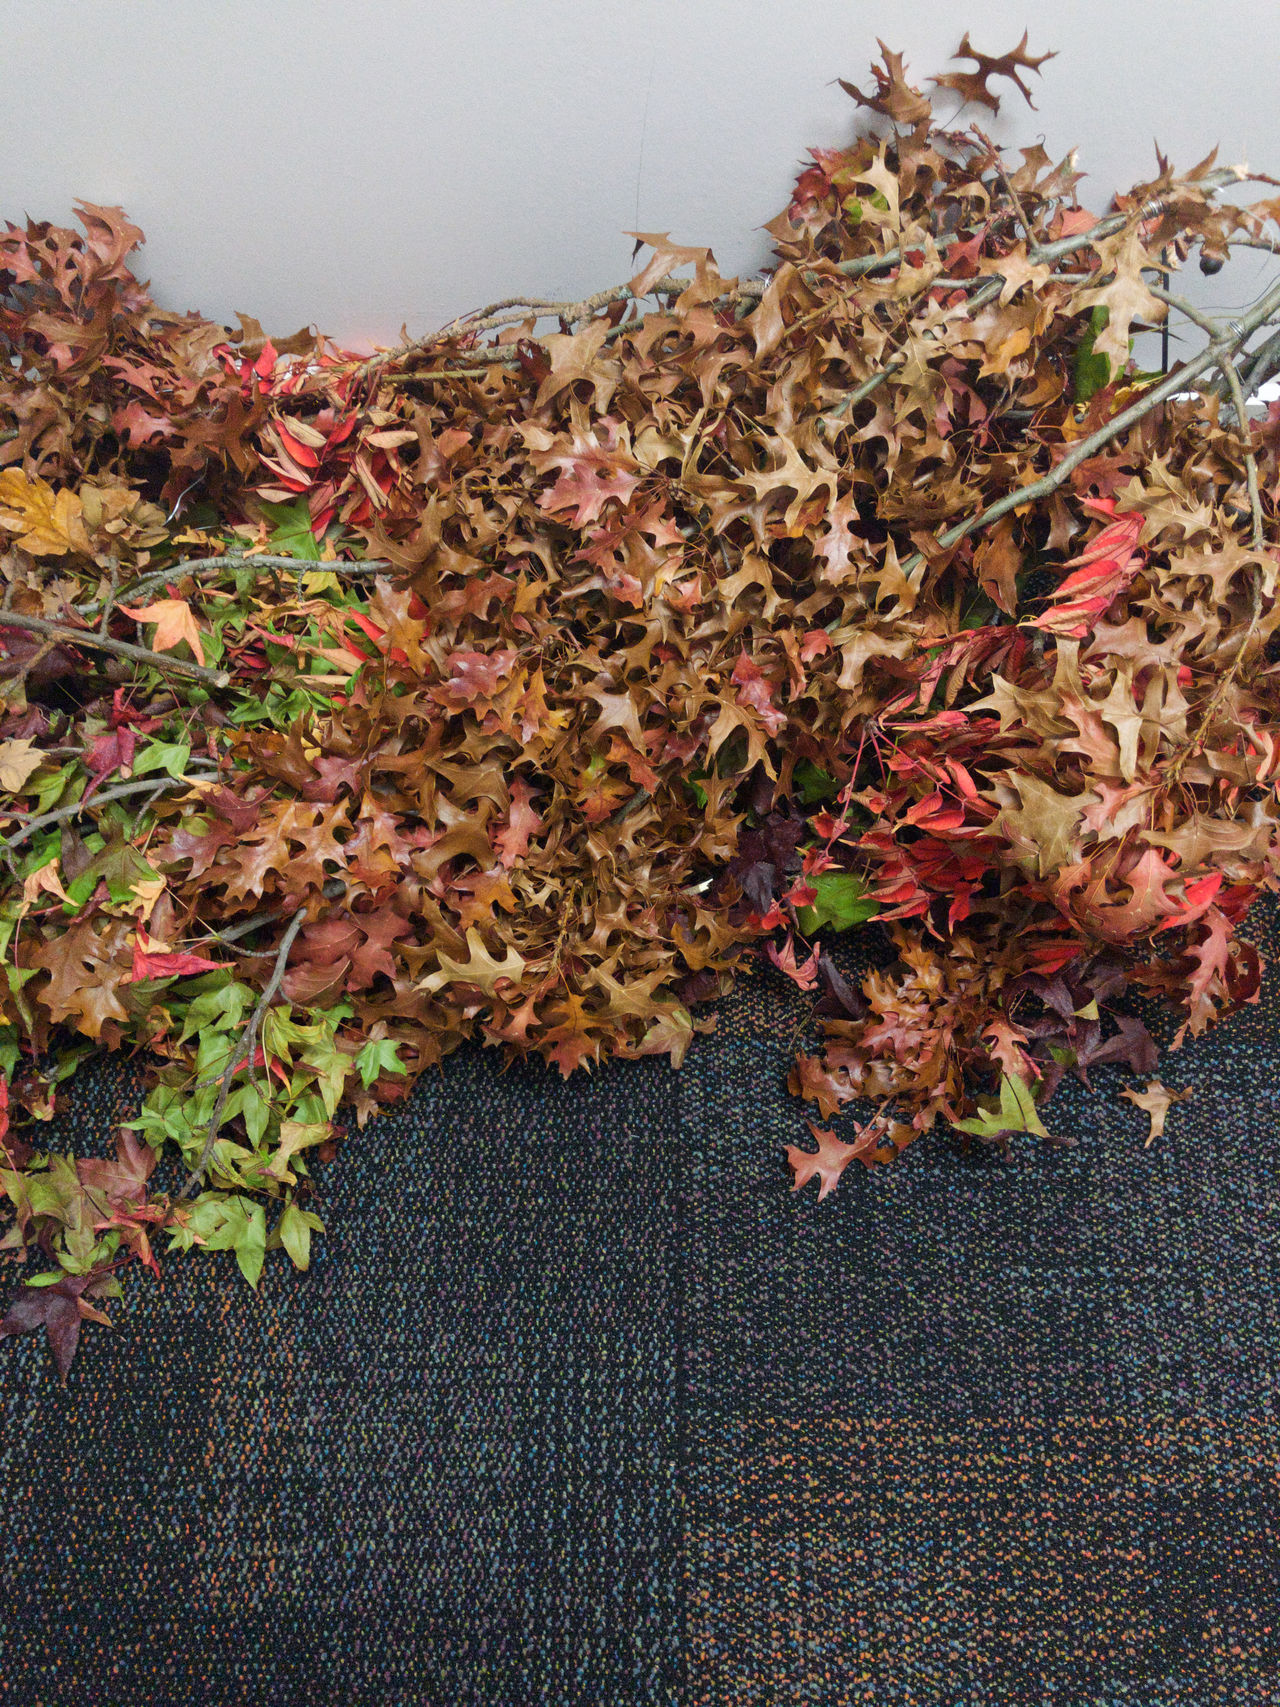 Abundance Autumn Beauty In Nature Change Close-up Dry Fragility Growth Ivy Leaf Leaves Nature No People Plant